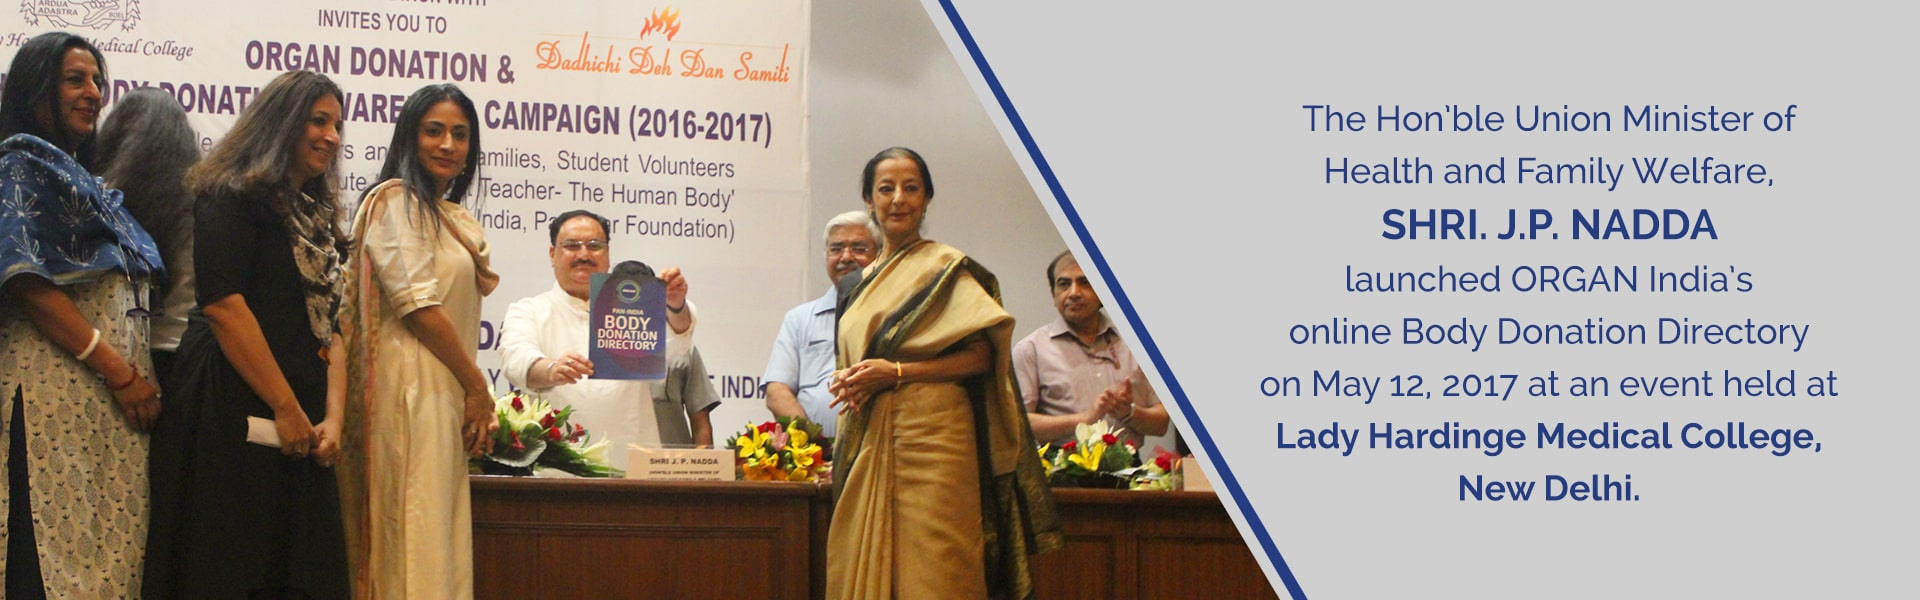 ORGAN India's online body donation directory launched